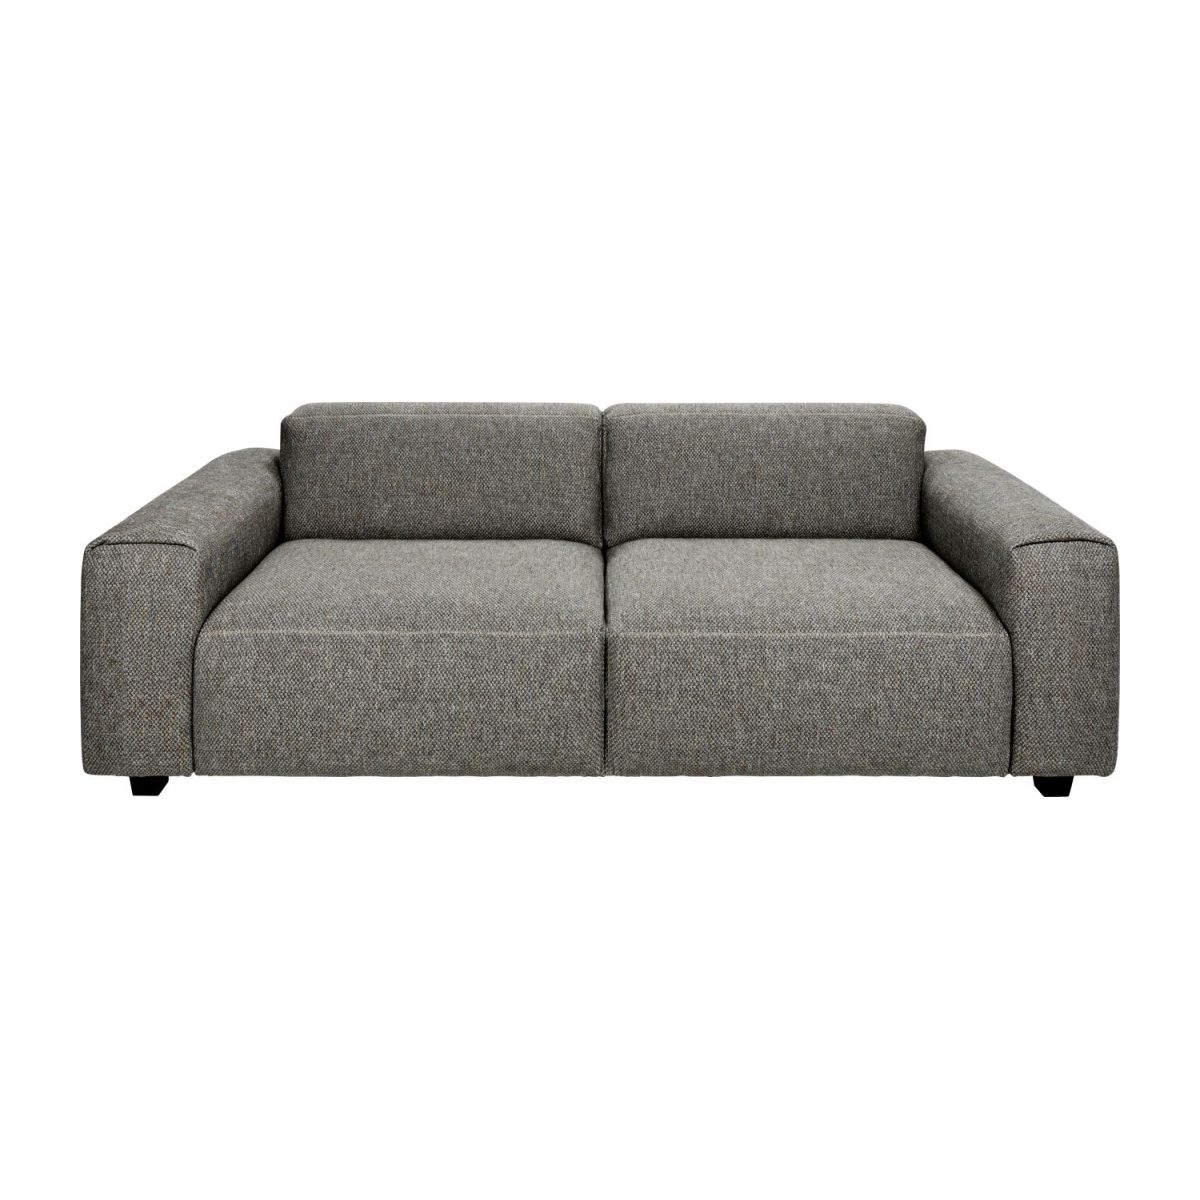 3-Sitzer Sofa aus Stoff Bellagio night black n°3